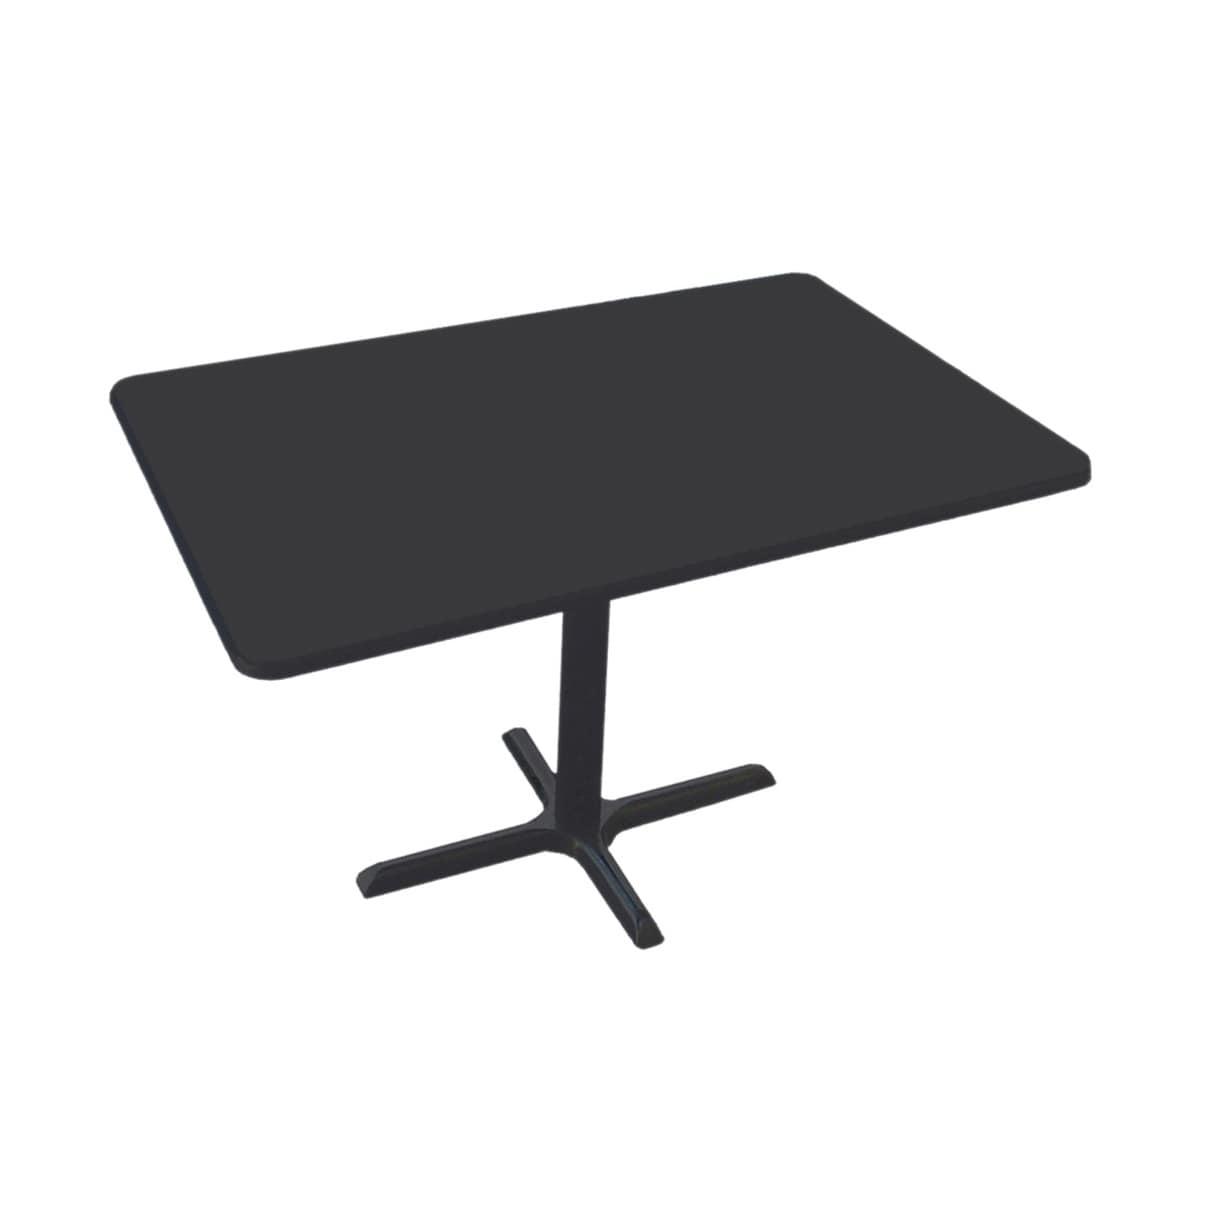 Correll Table Height High Pressure Cafe and Breakroom Rectangular Table - Black Granite - 30W x 42L